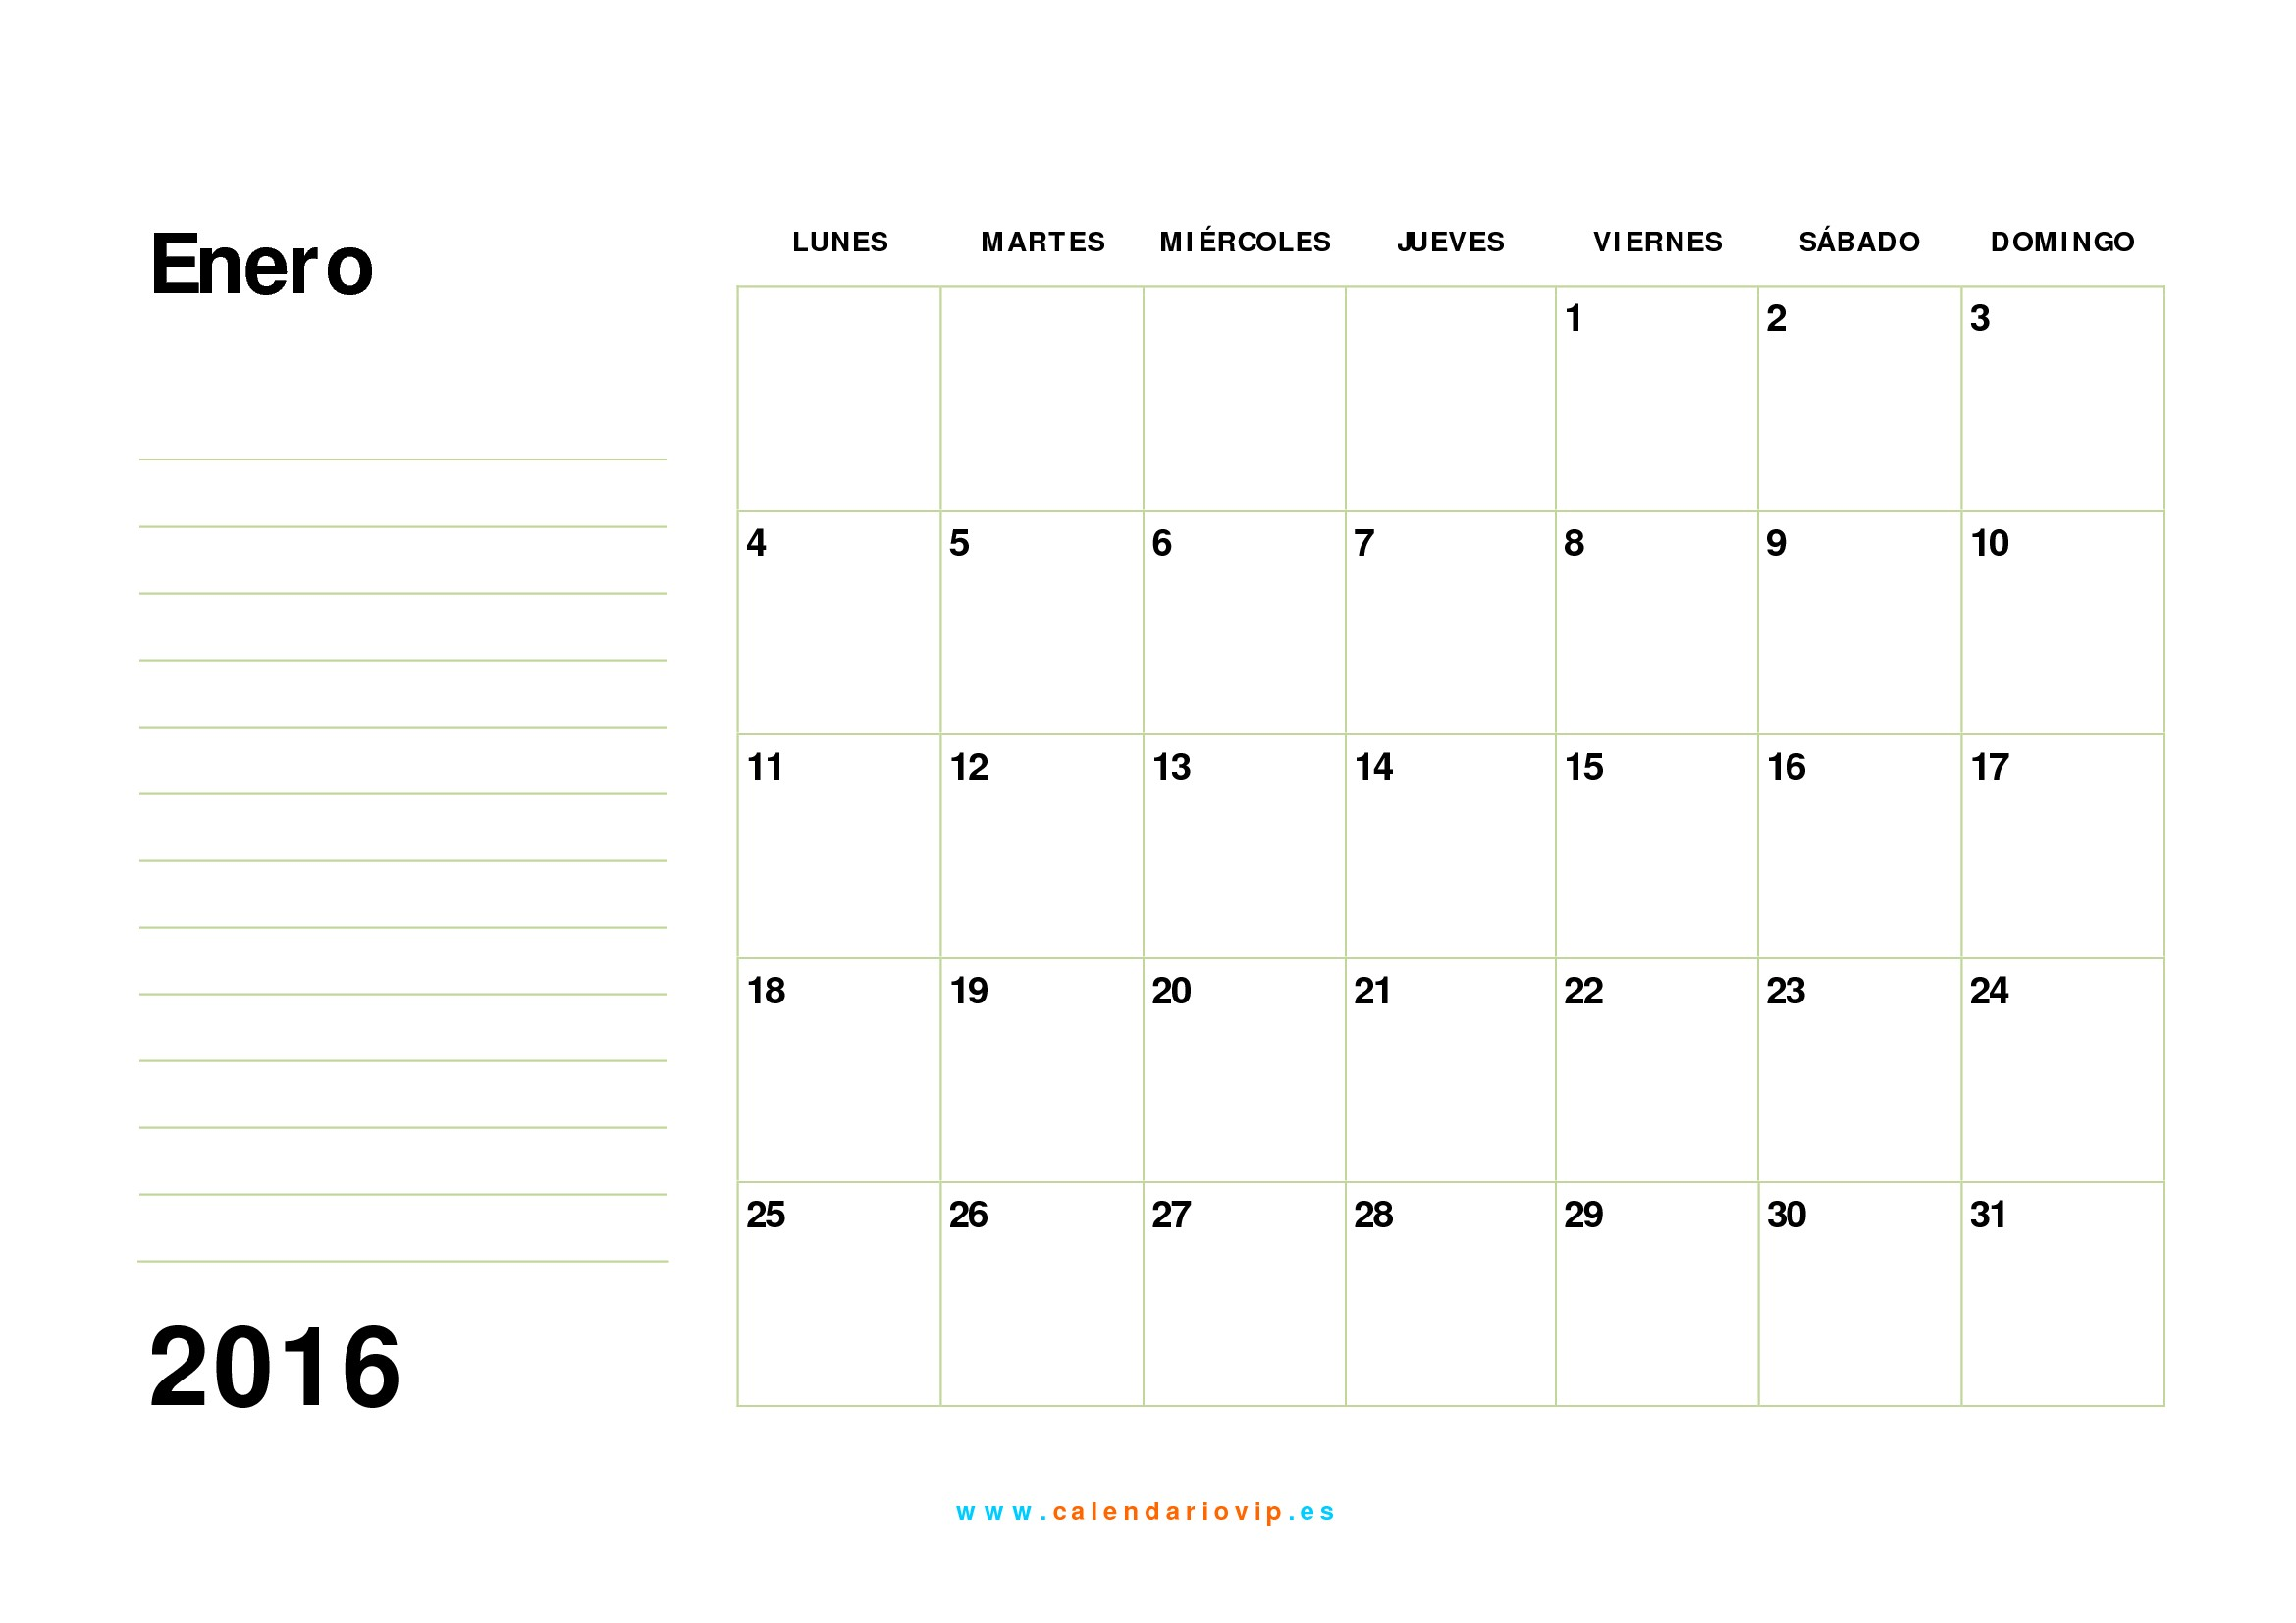 Calendario Semanal Para Imprimir 2017 Más Recientemente Liberado List Of Synonyms and Antonyms Of the Word Agenda 2016 Enero Of Calendario Semanal Para Imprimir 2017 Mejores Y Más Novedosos Agenda A5